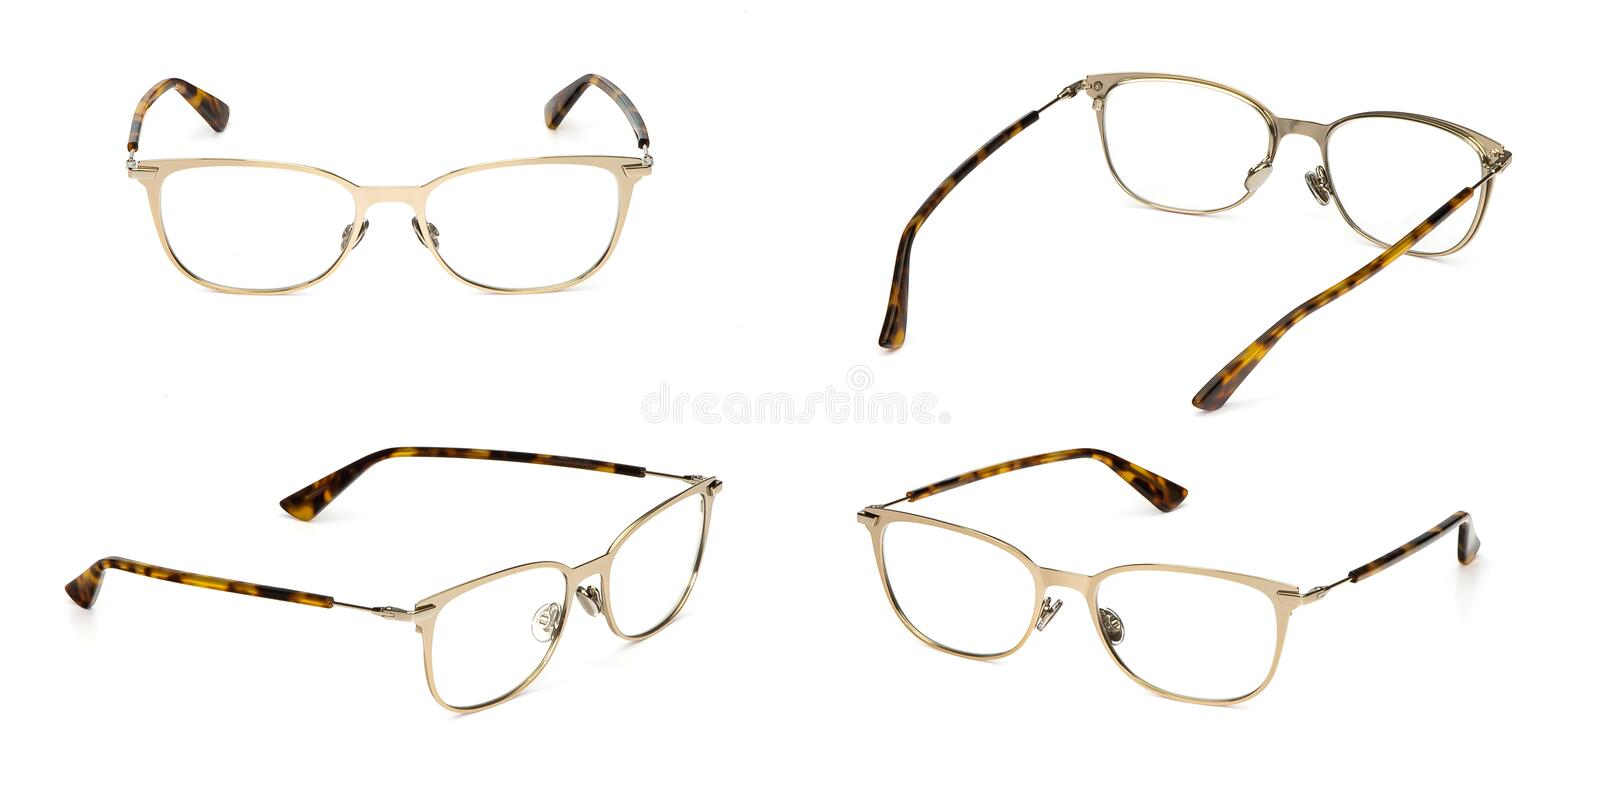 Set glasses metal material transparent isolated on white background. Collection fashion office eye glasses royalty free stock photo